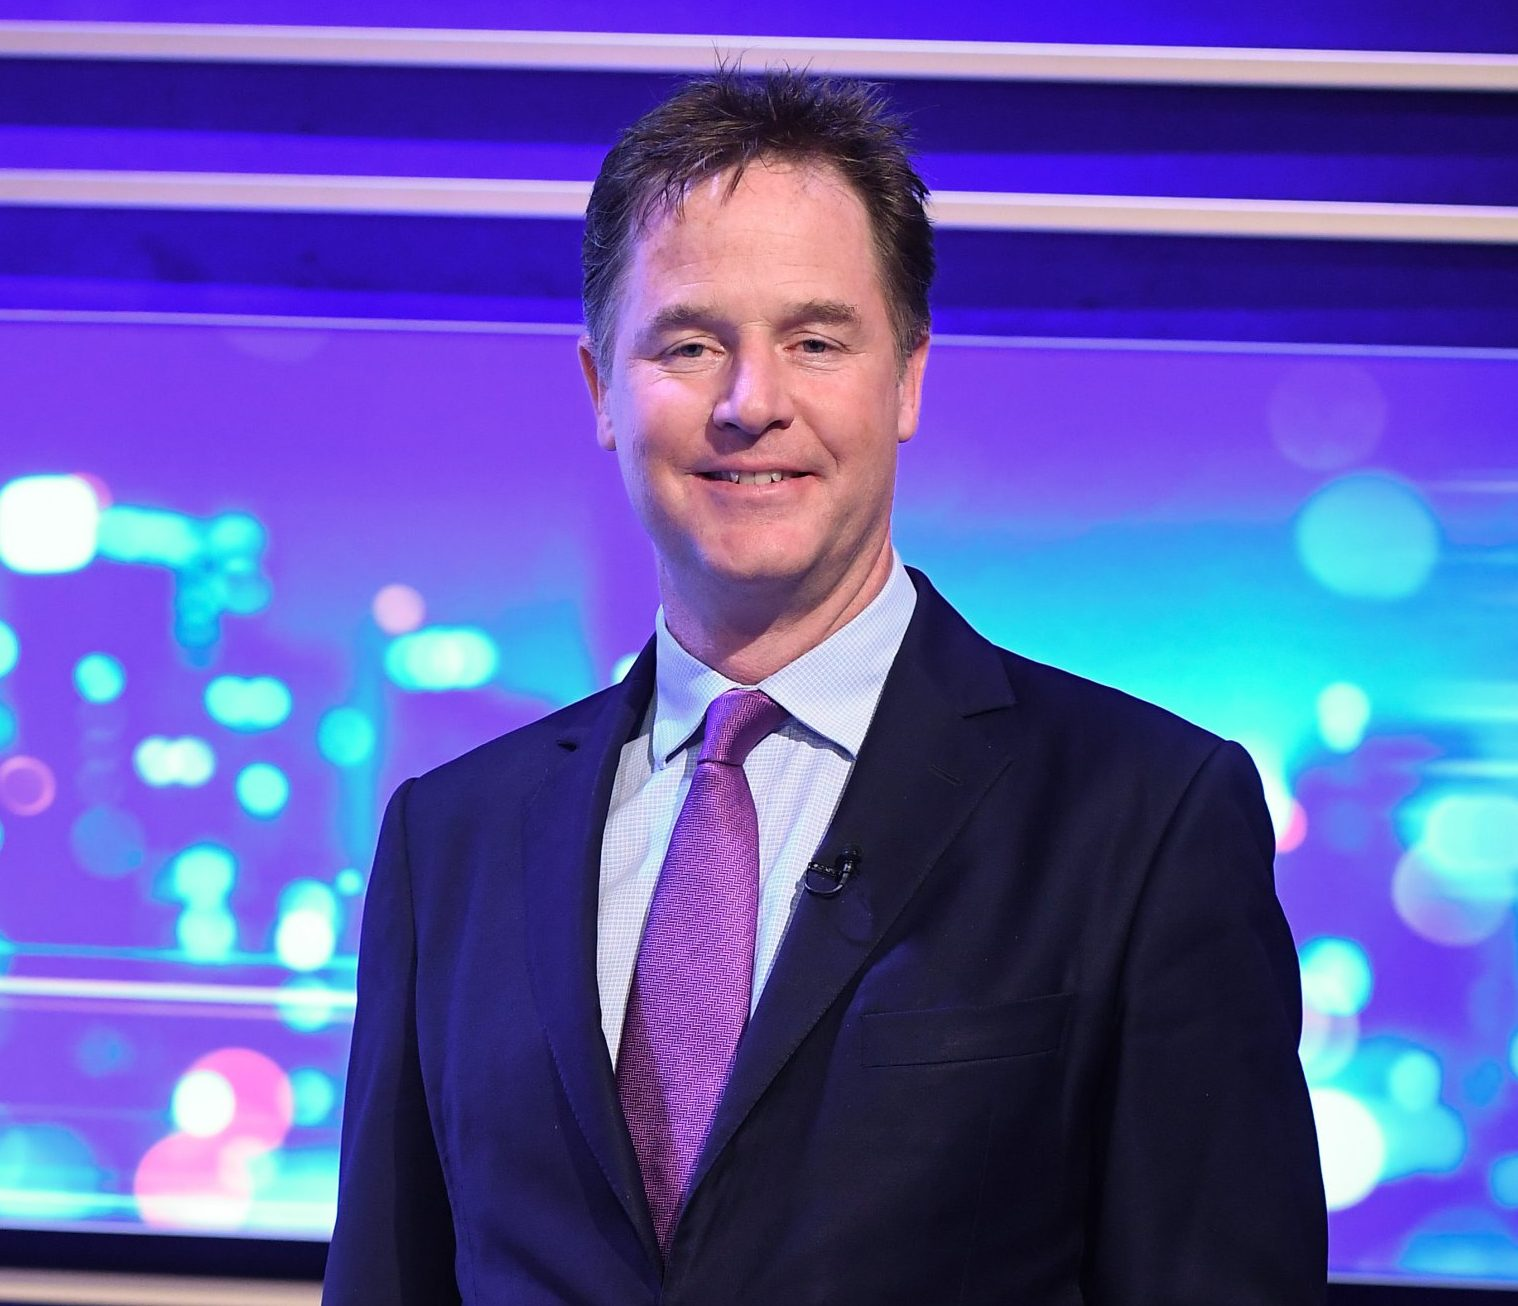 Mandatory Credit: Photo by Jonathan Hordle/ITV/REX/Shutterstock (9921539b) Nick Clegg 'Peston' TV Show, Series 1, Episode 3, London, UK - 10 Oct 2018